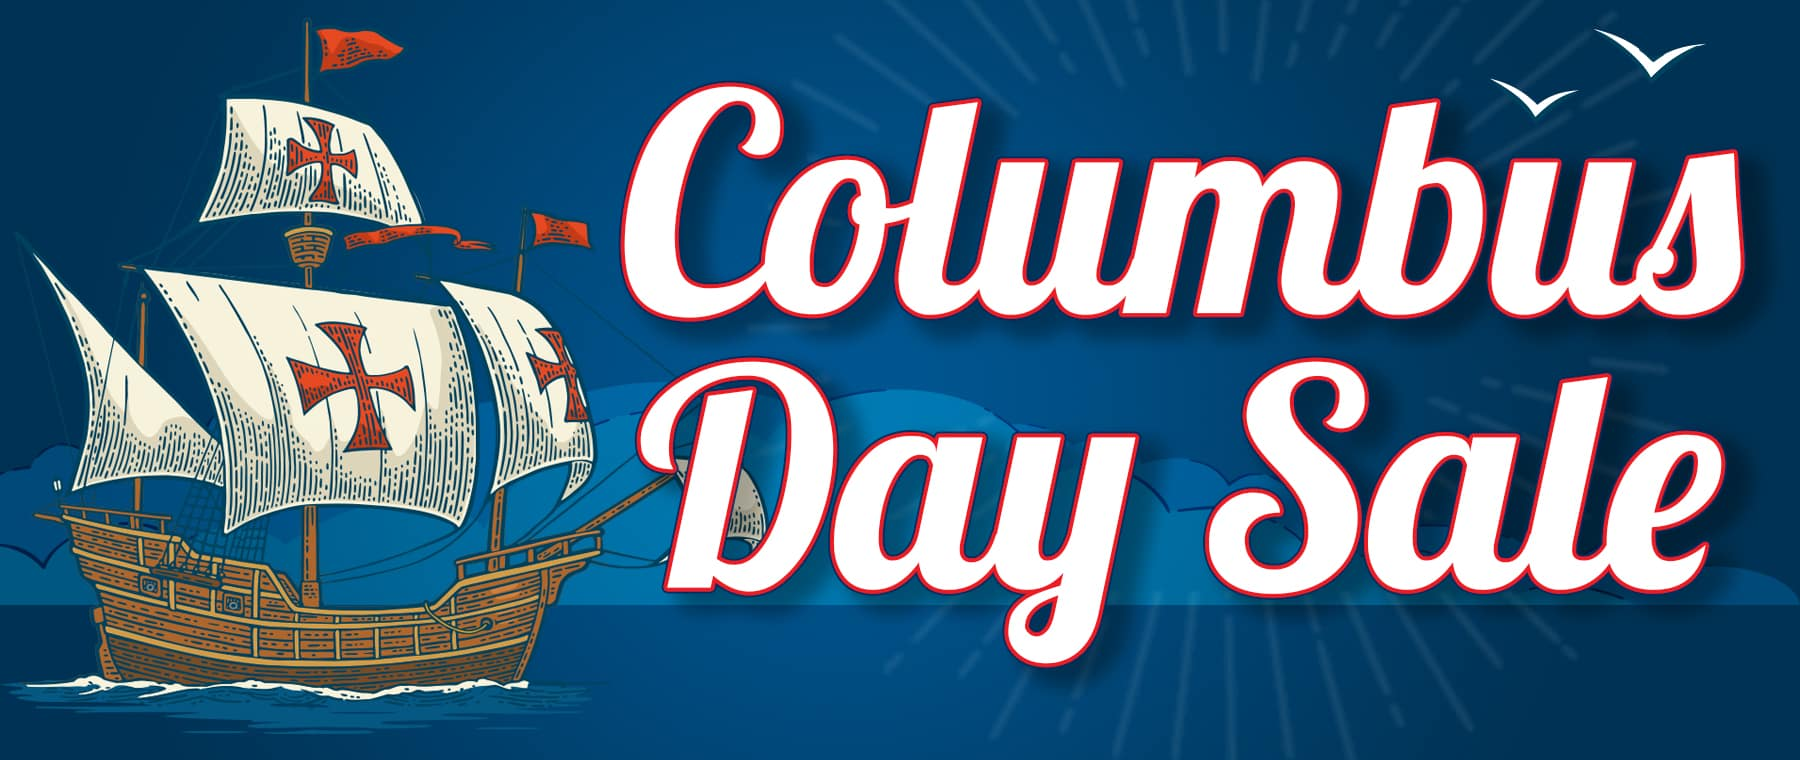 Central Colubus Day